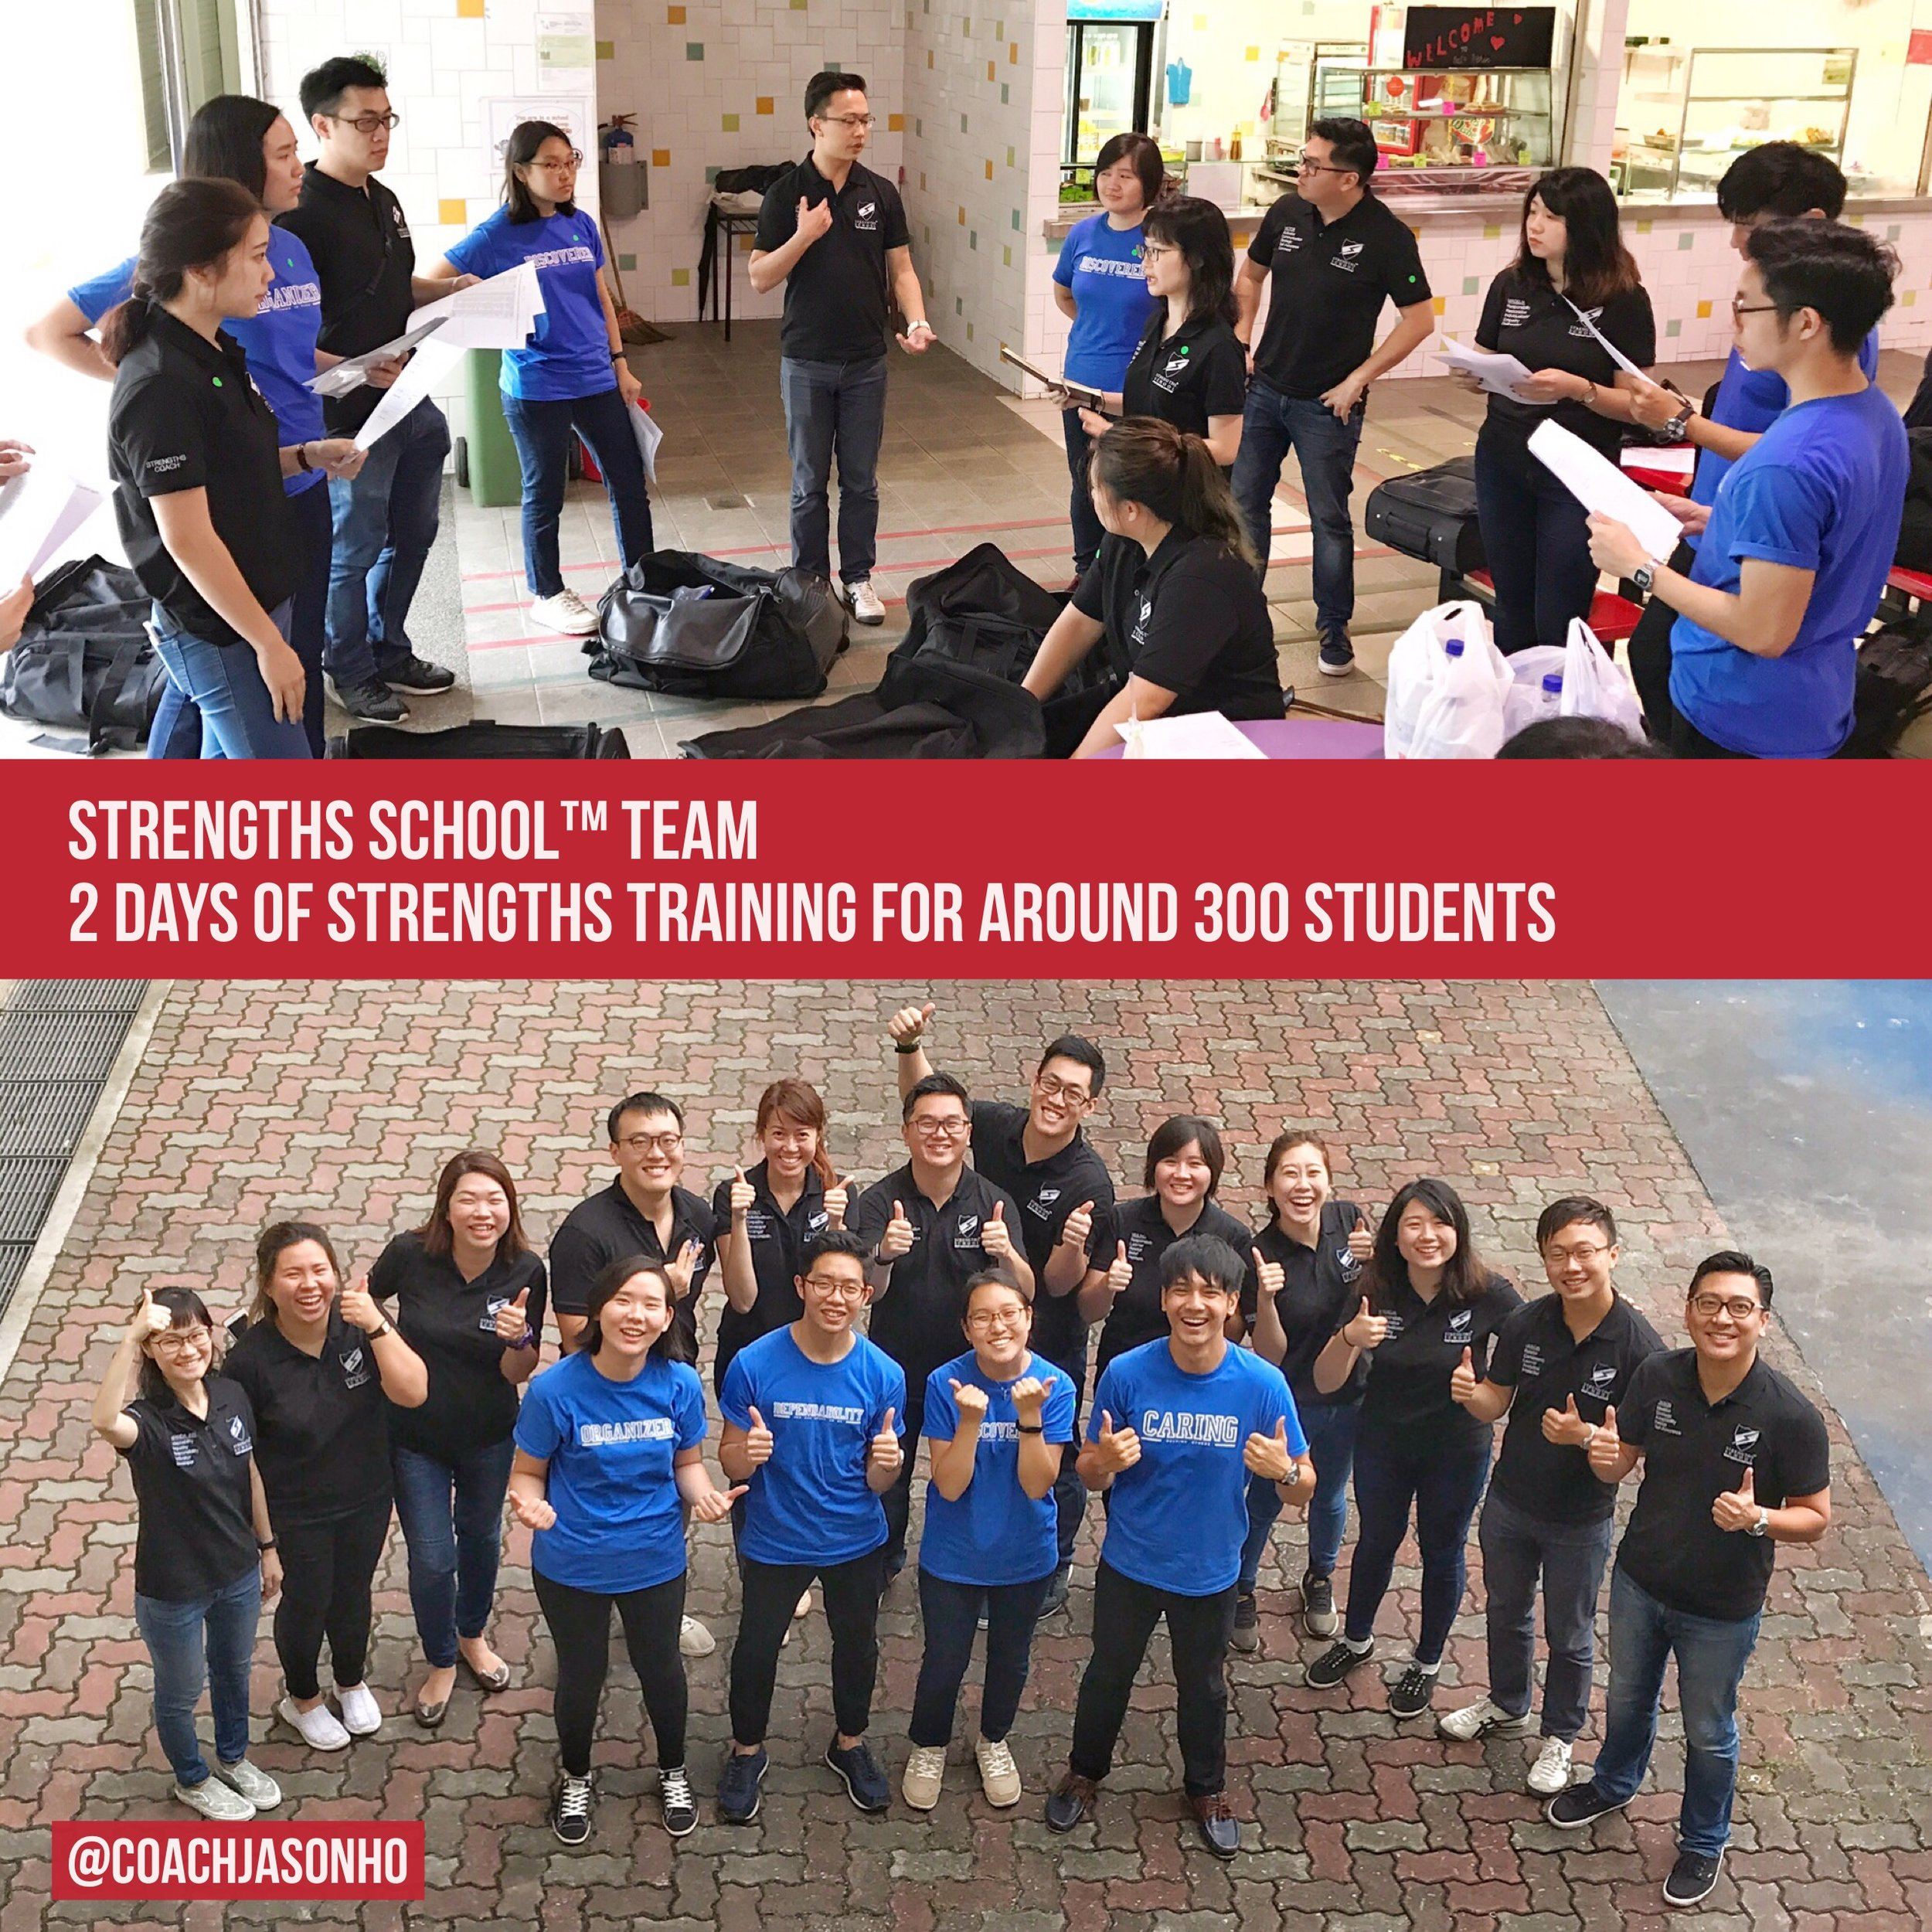 StrengthsFinder Coaches & trainers doing a strengths workshop in Singapore for around 300 students over the last 2 days